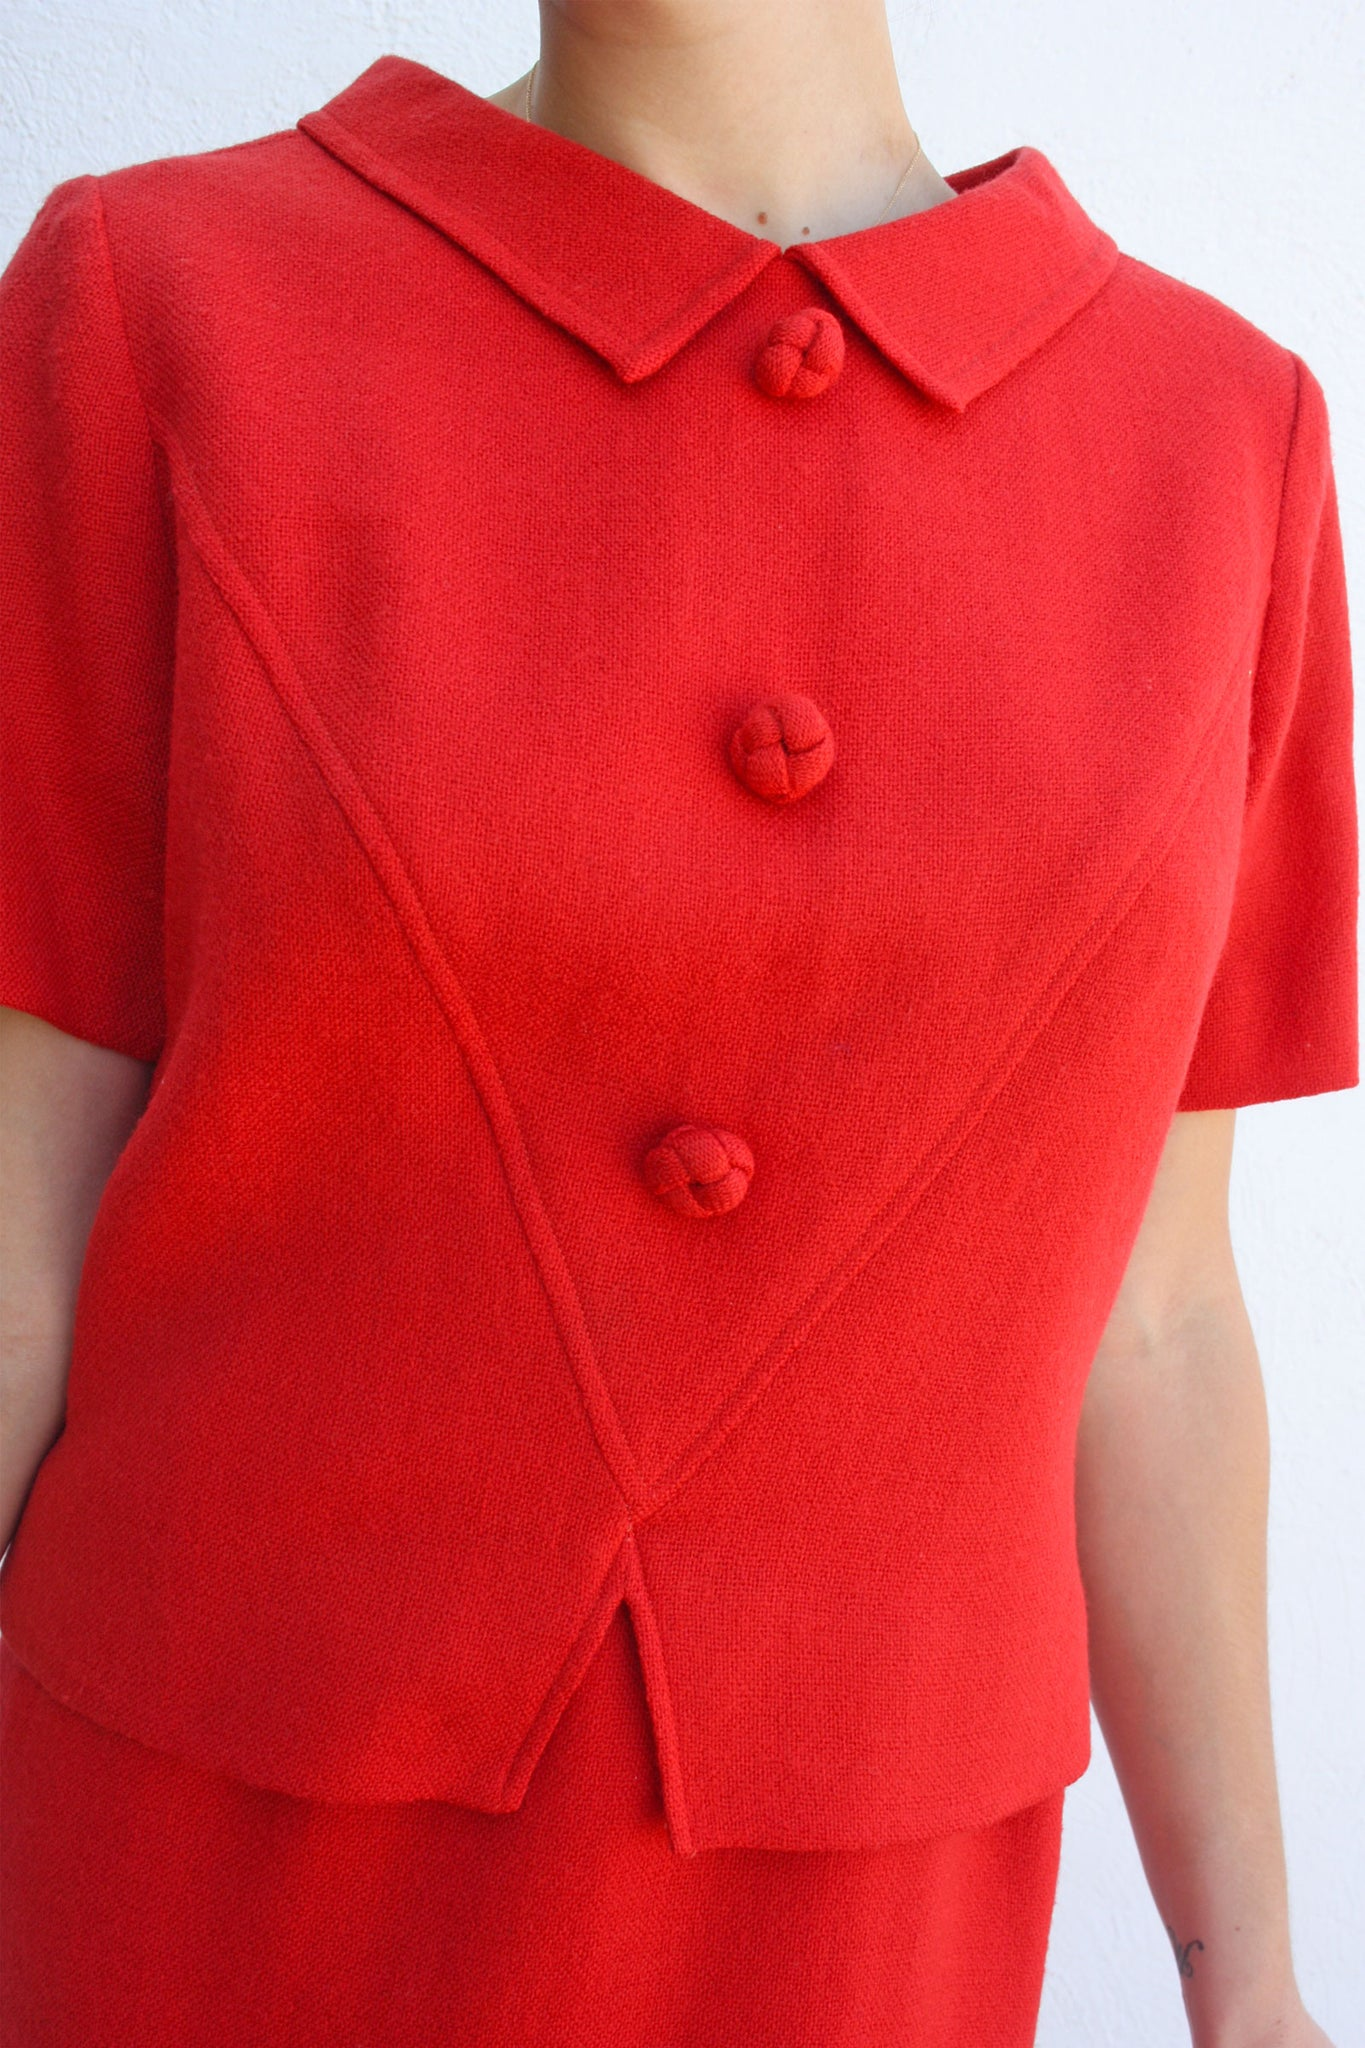 Vintage 1950's red vintage suit - Shop SoLovesVintage